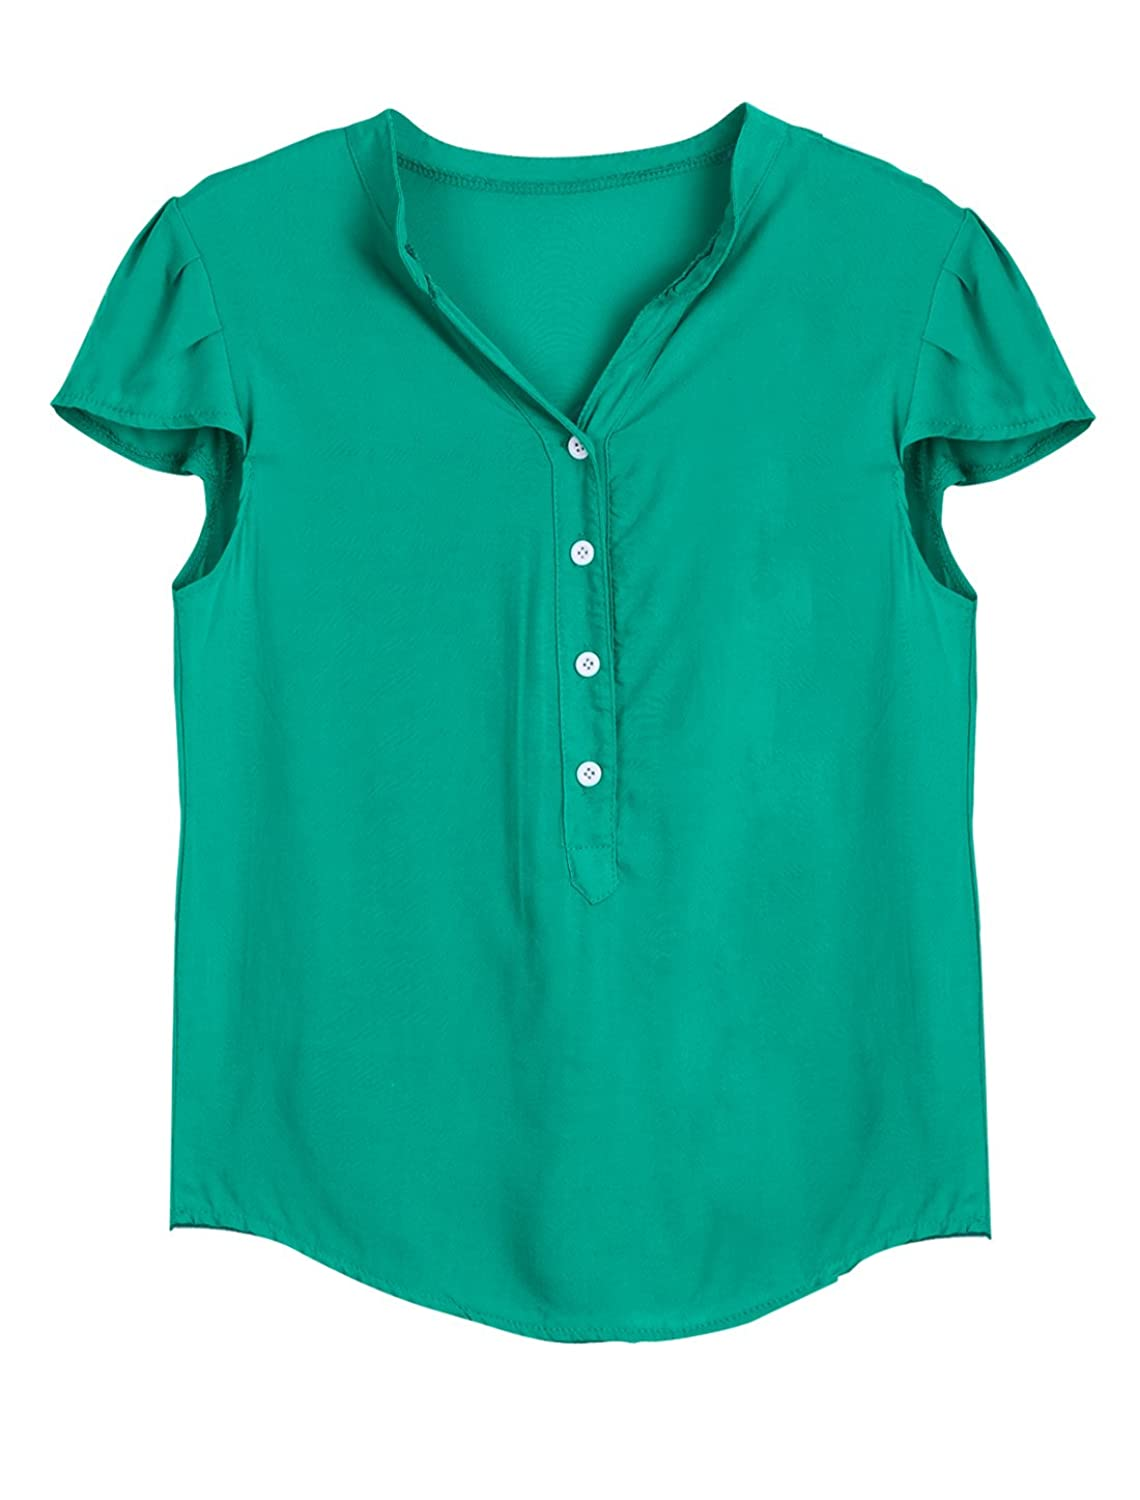 Lady Stand Collar Short Sleeve Button Closure Casual Blouse at Amazon Women�s Clothing store